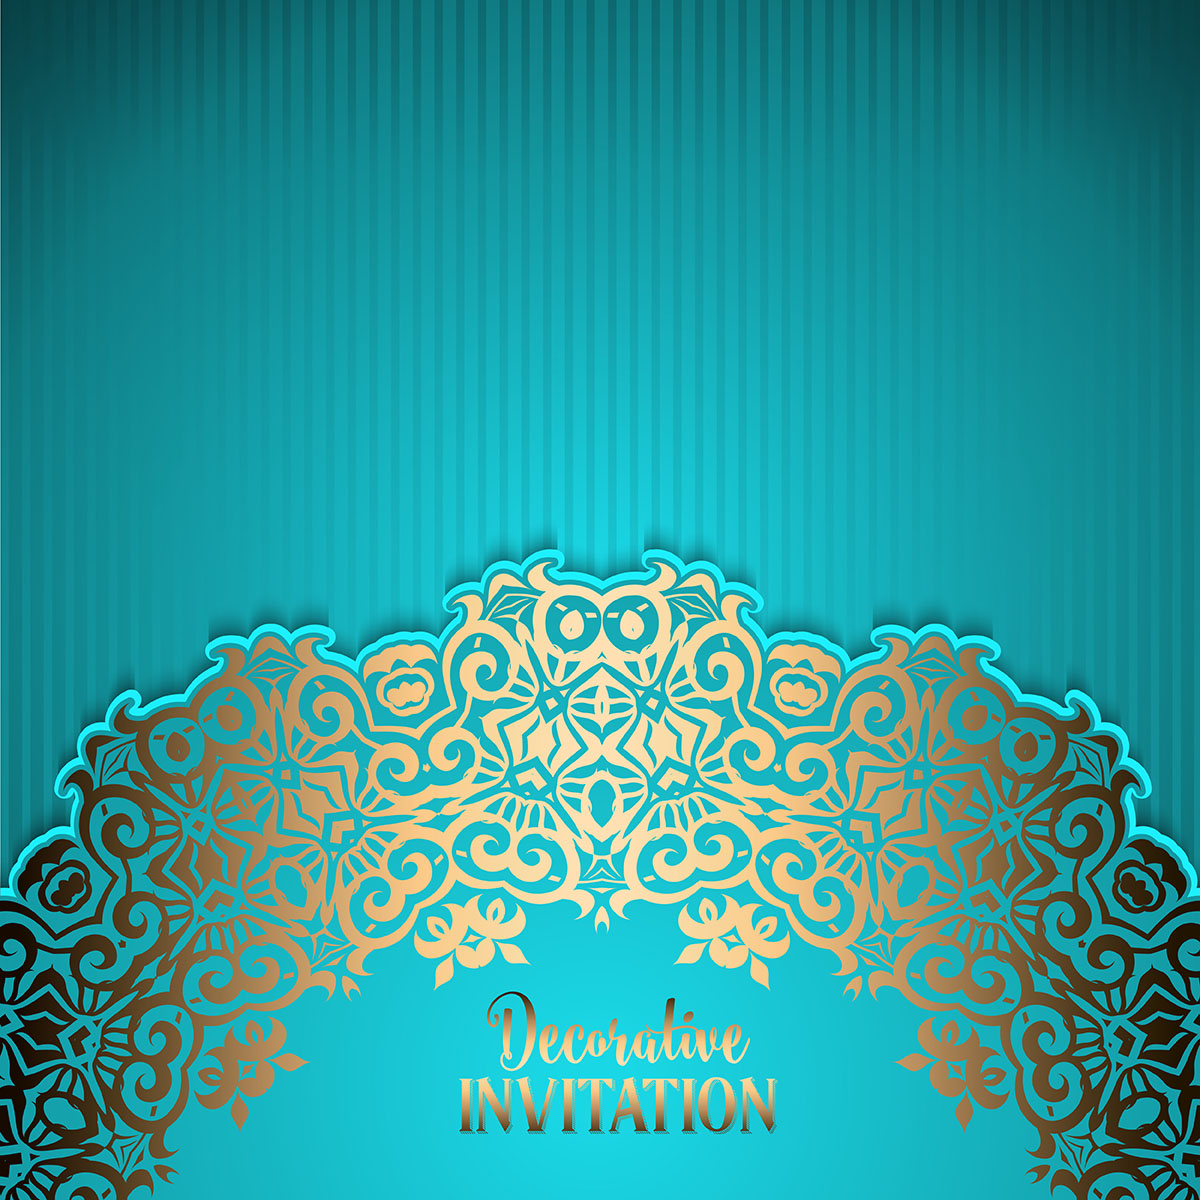 Wedding Invitation Backgrounds: Decorative Invitation Background